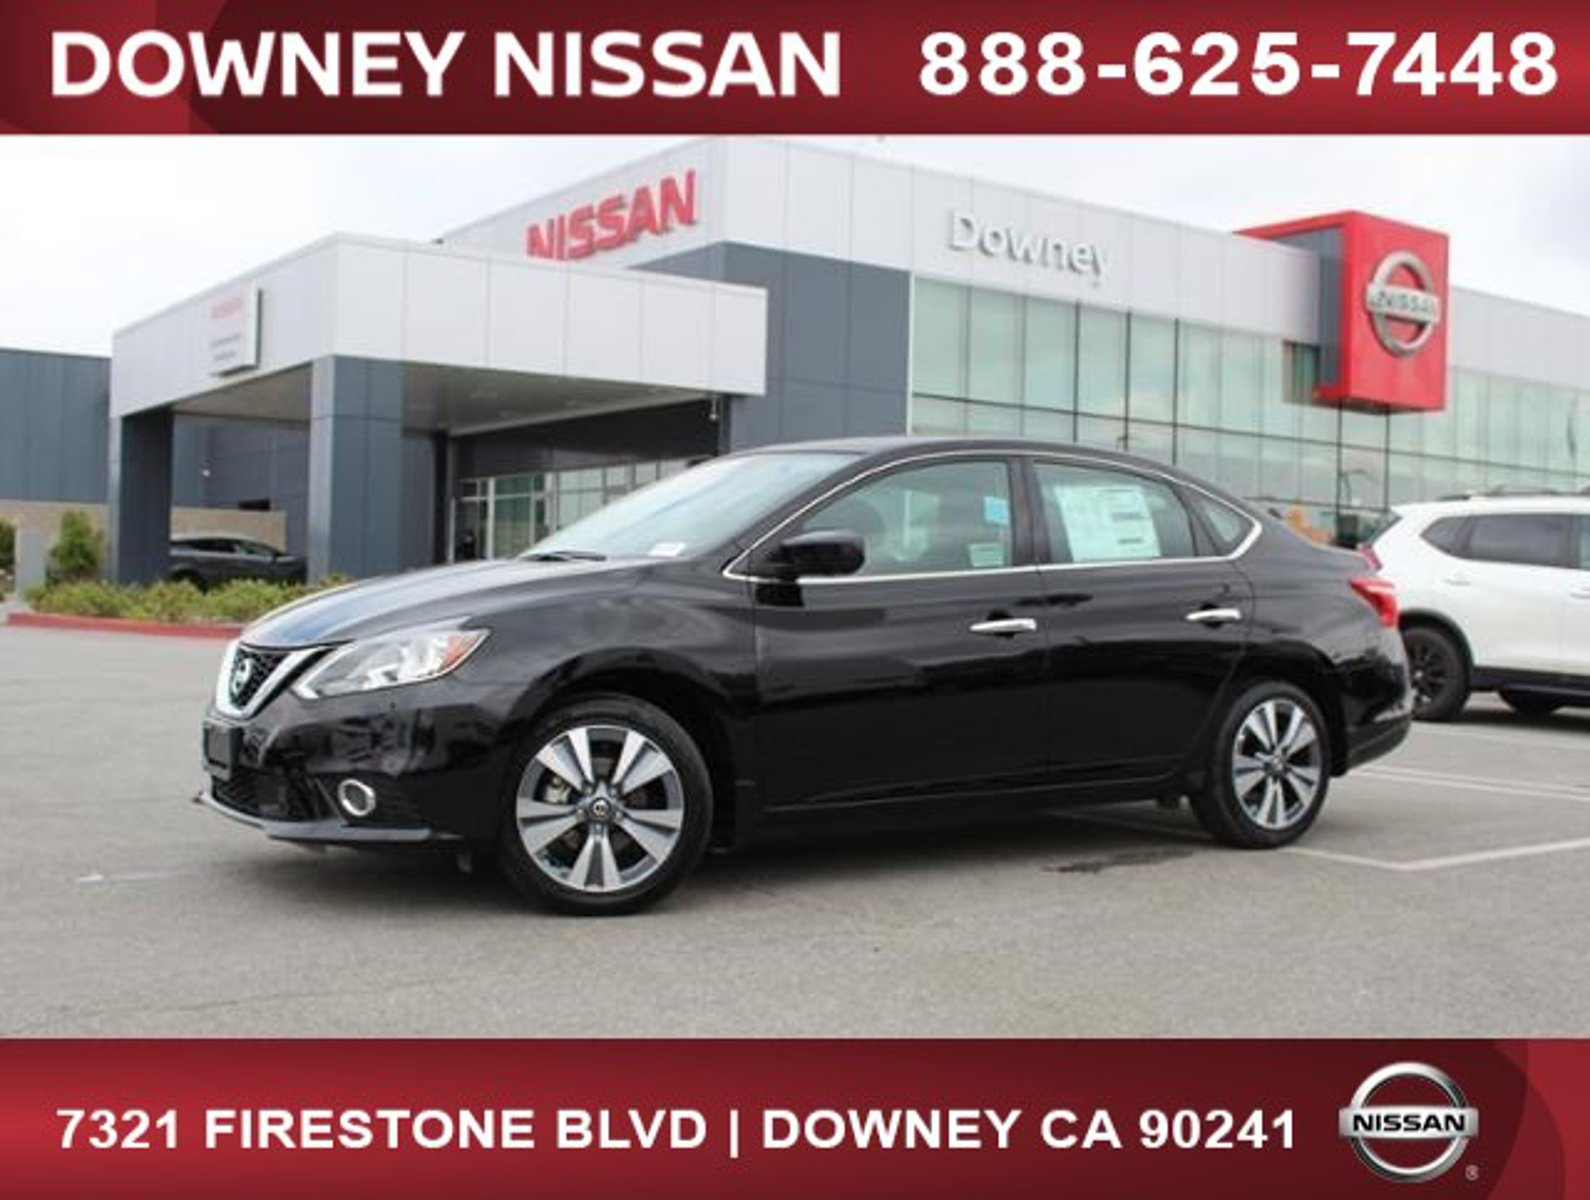 2019 Nissan Sentra SV SV CVT Regular Unleaded I-4 1.8 L/110 [33]